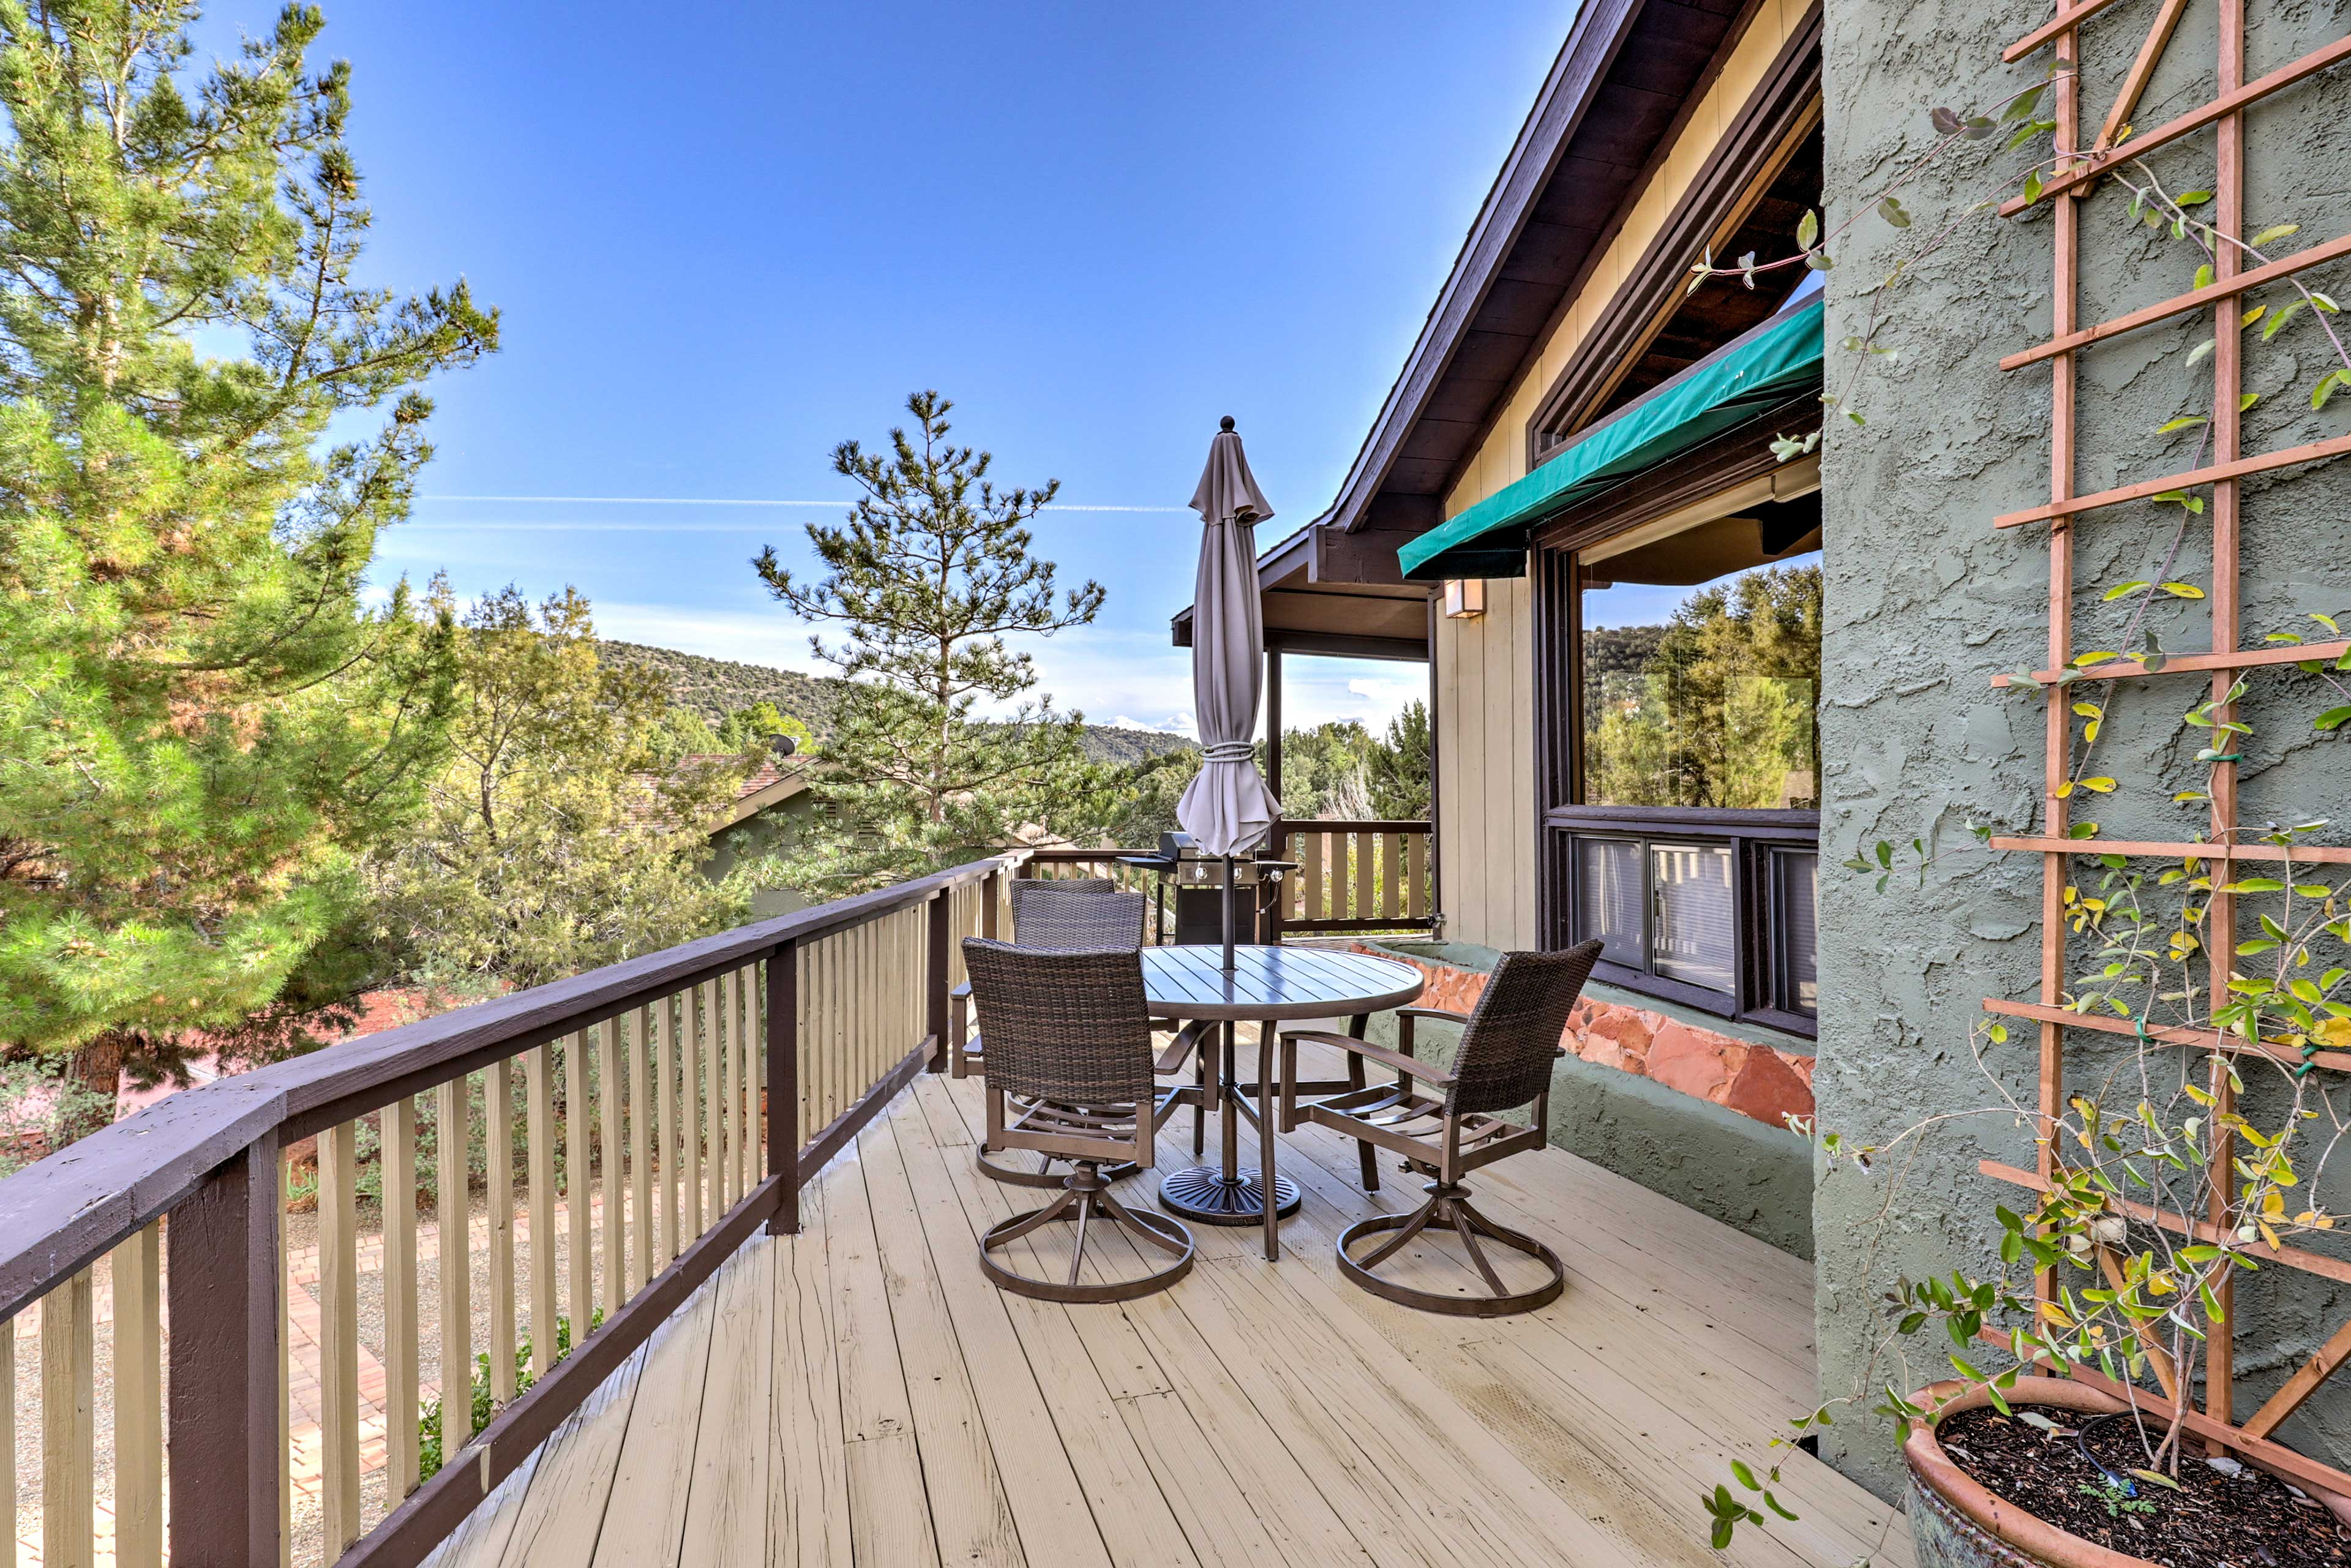 The wraparound deck makes sure you have views of sunrise and sunset.